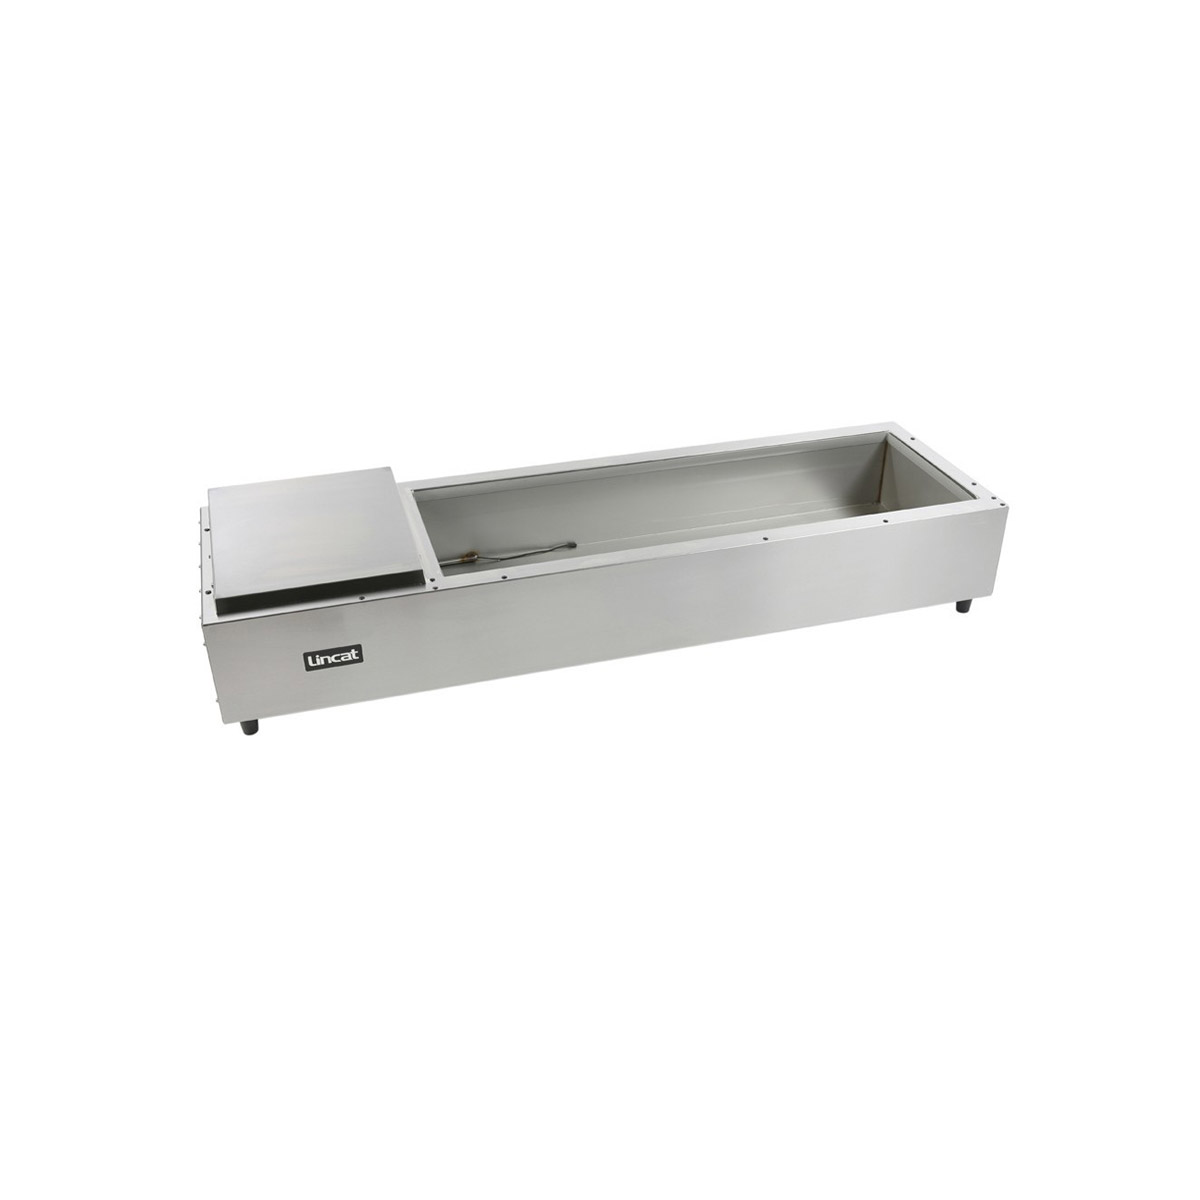 FPB7 - Lincat Seal Counter-top Food Preparation Bar - Refrigerated - W 1576 mm - 0.175 kW